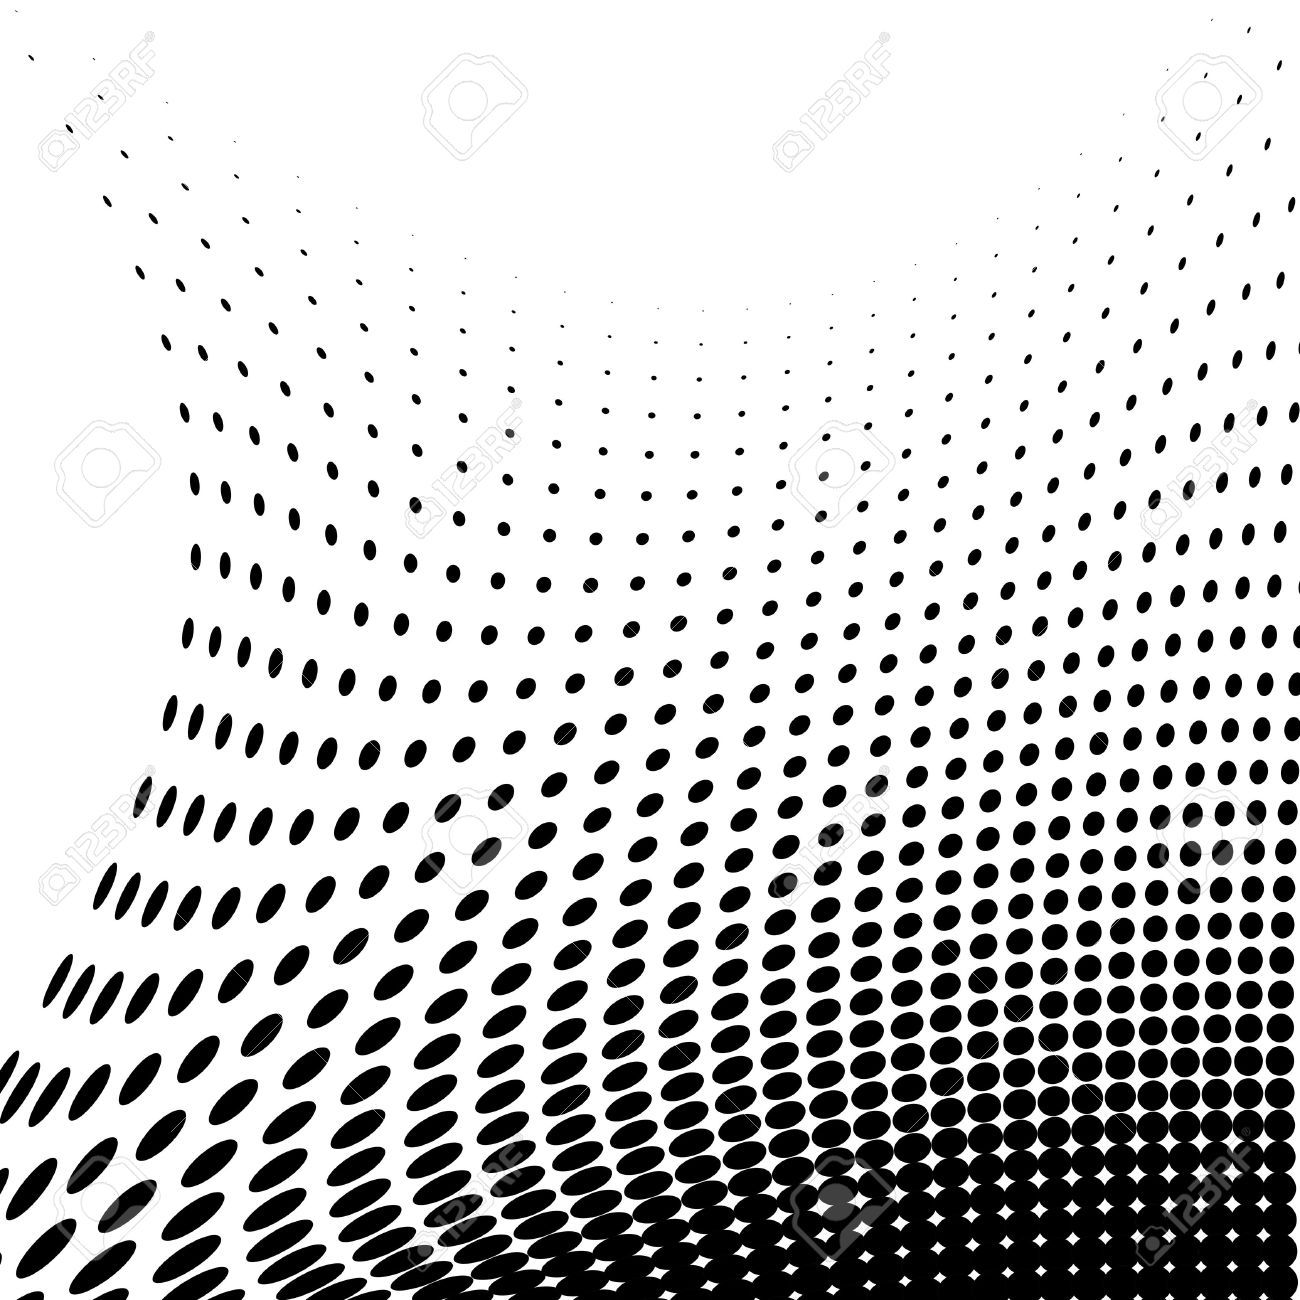 Stock Vector Halftone Dots Halftone Pattern Halftone Illustration